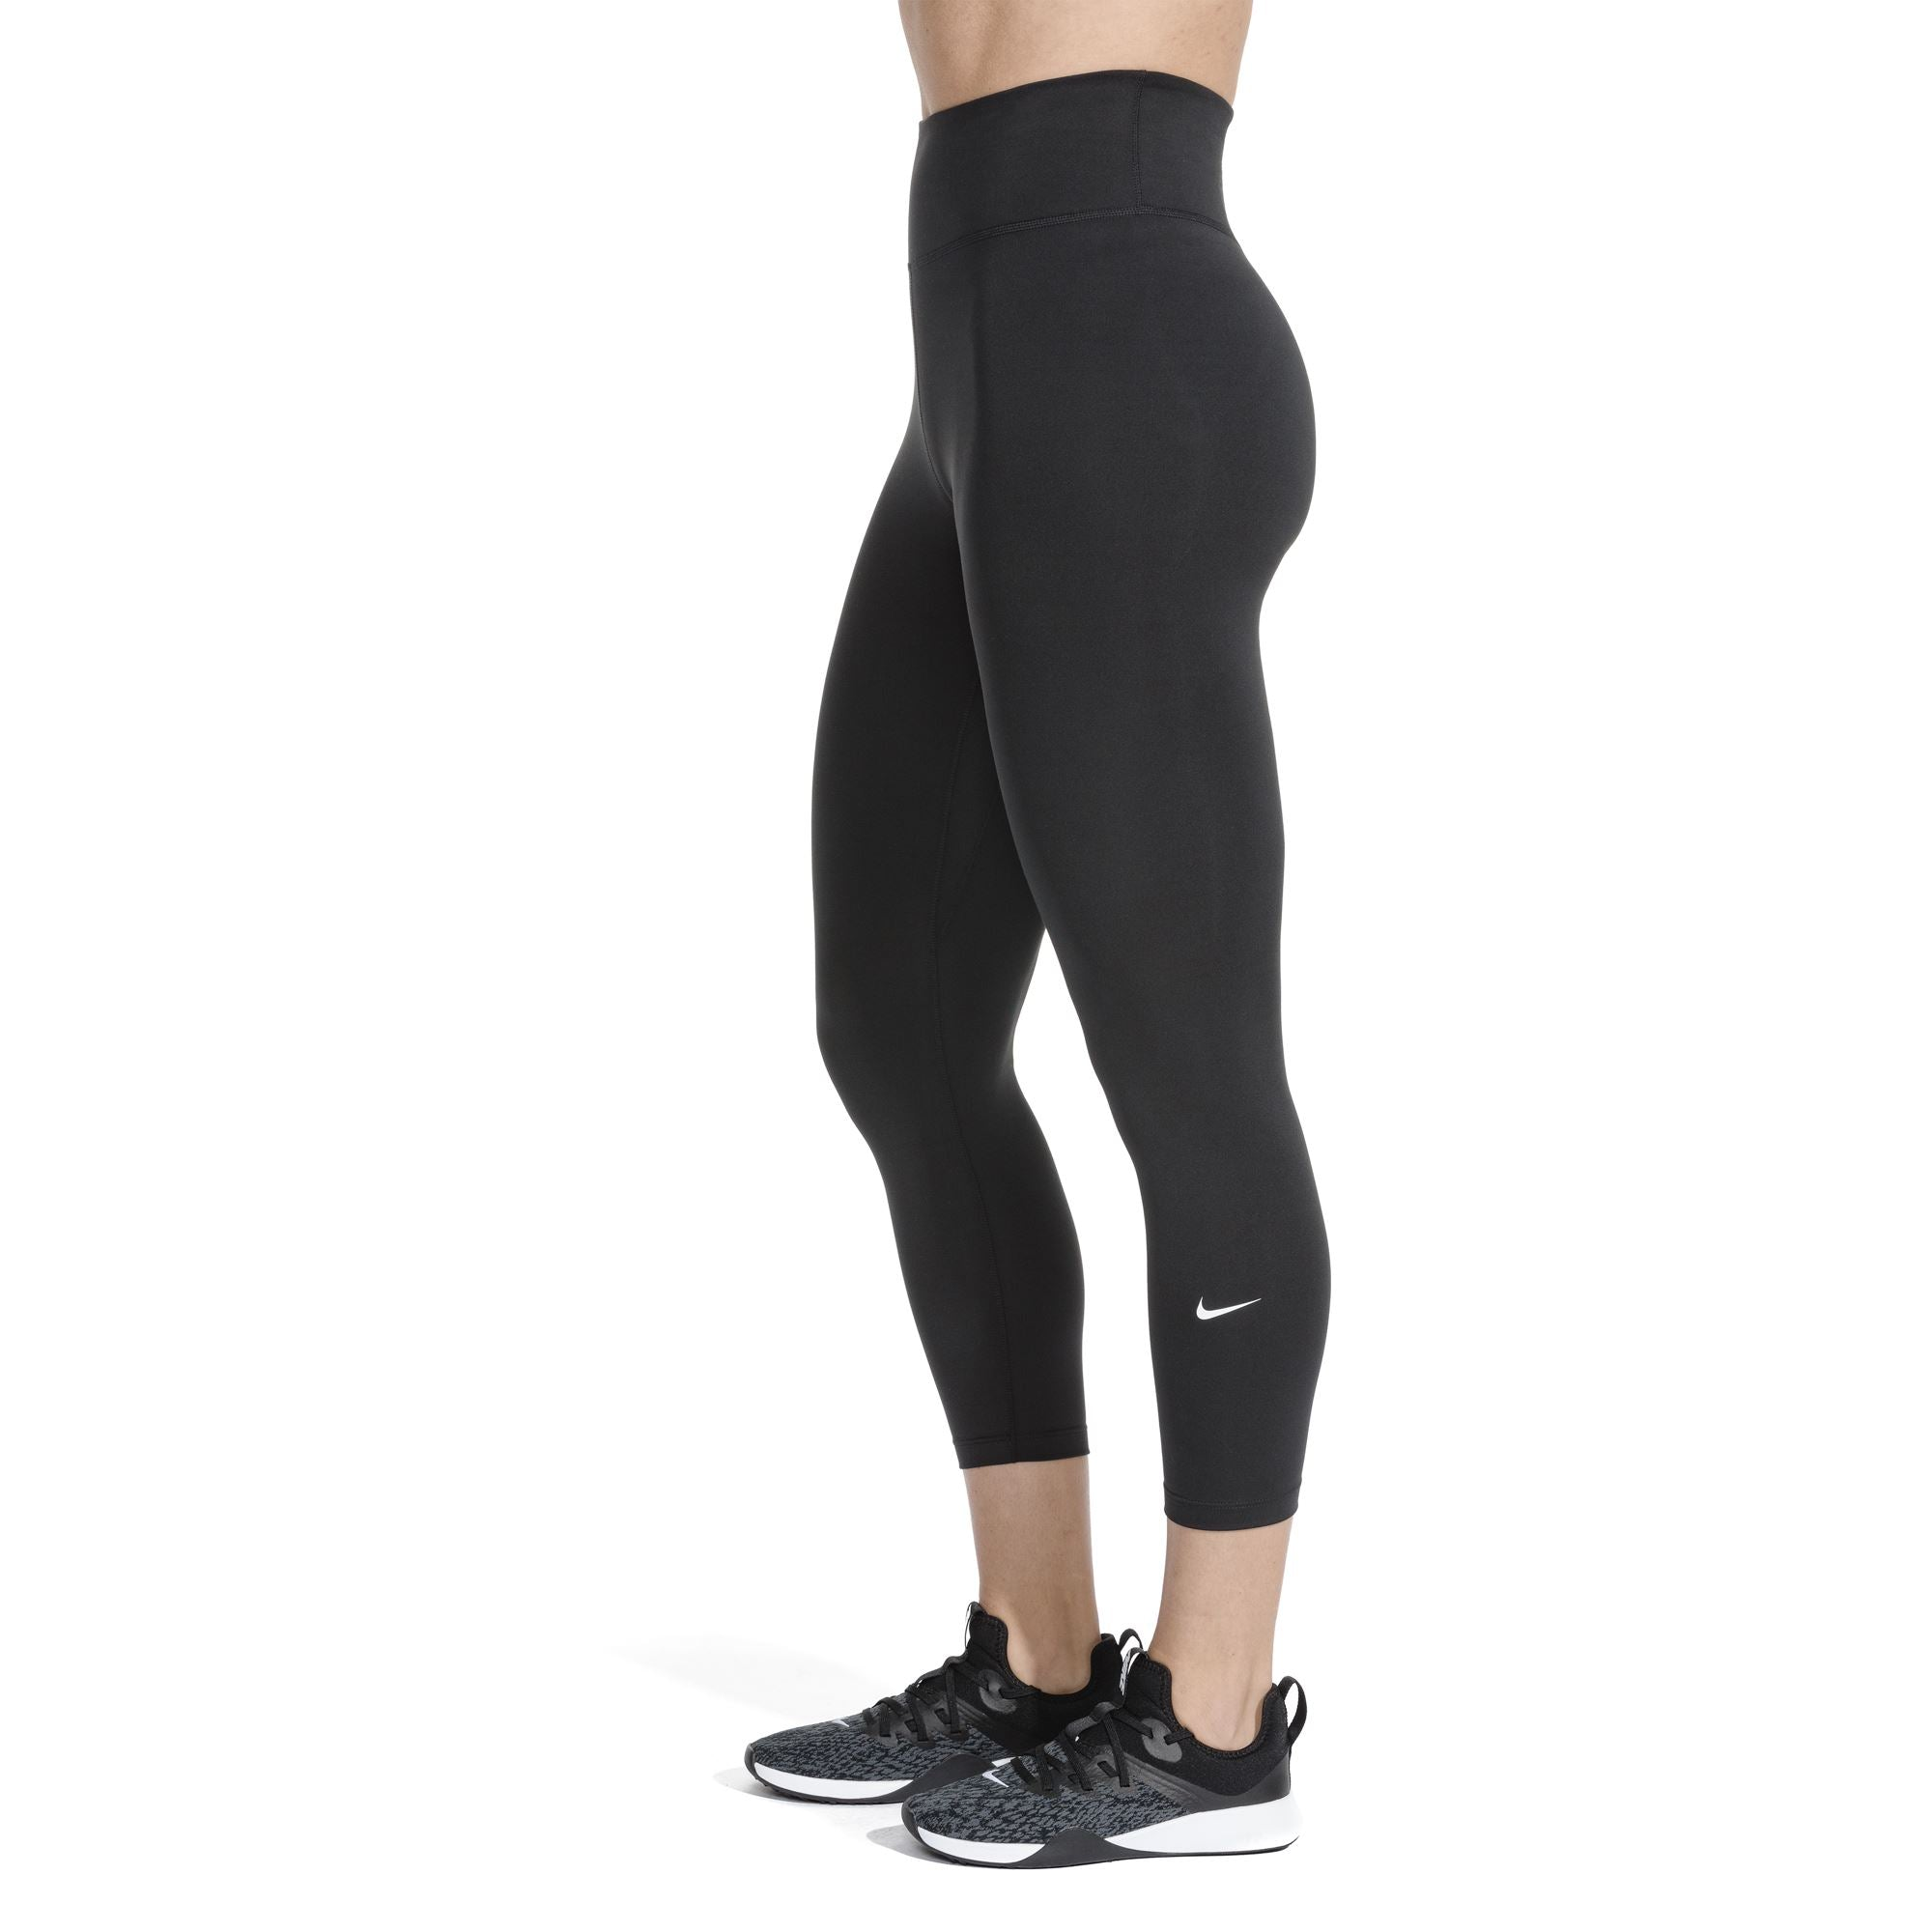 Nike Womens One Crop Tights - Black/White SP-ApparelTights-Womens Nike